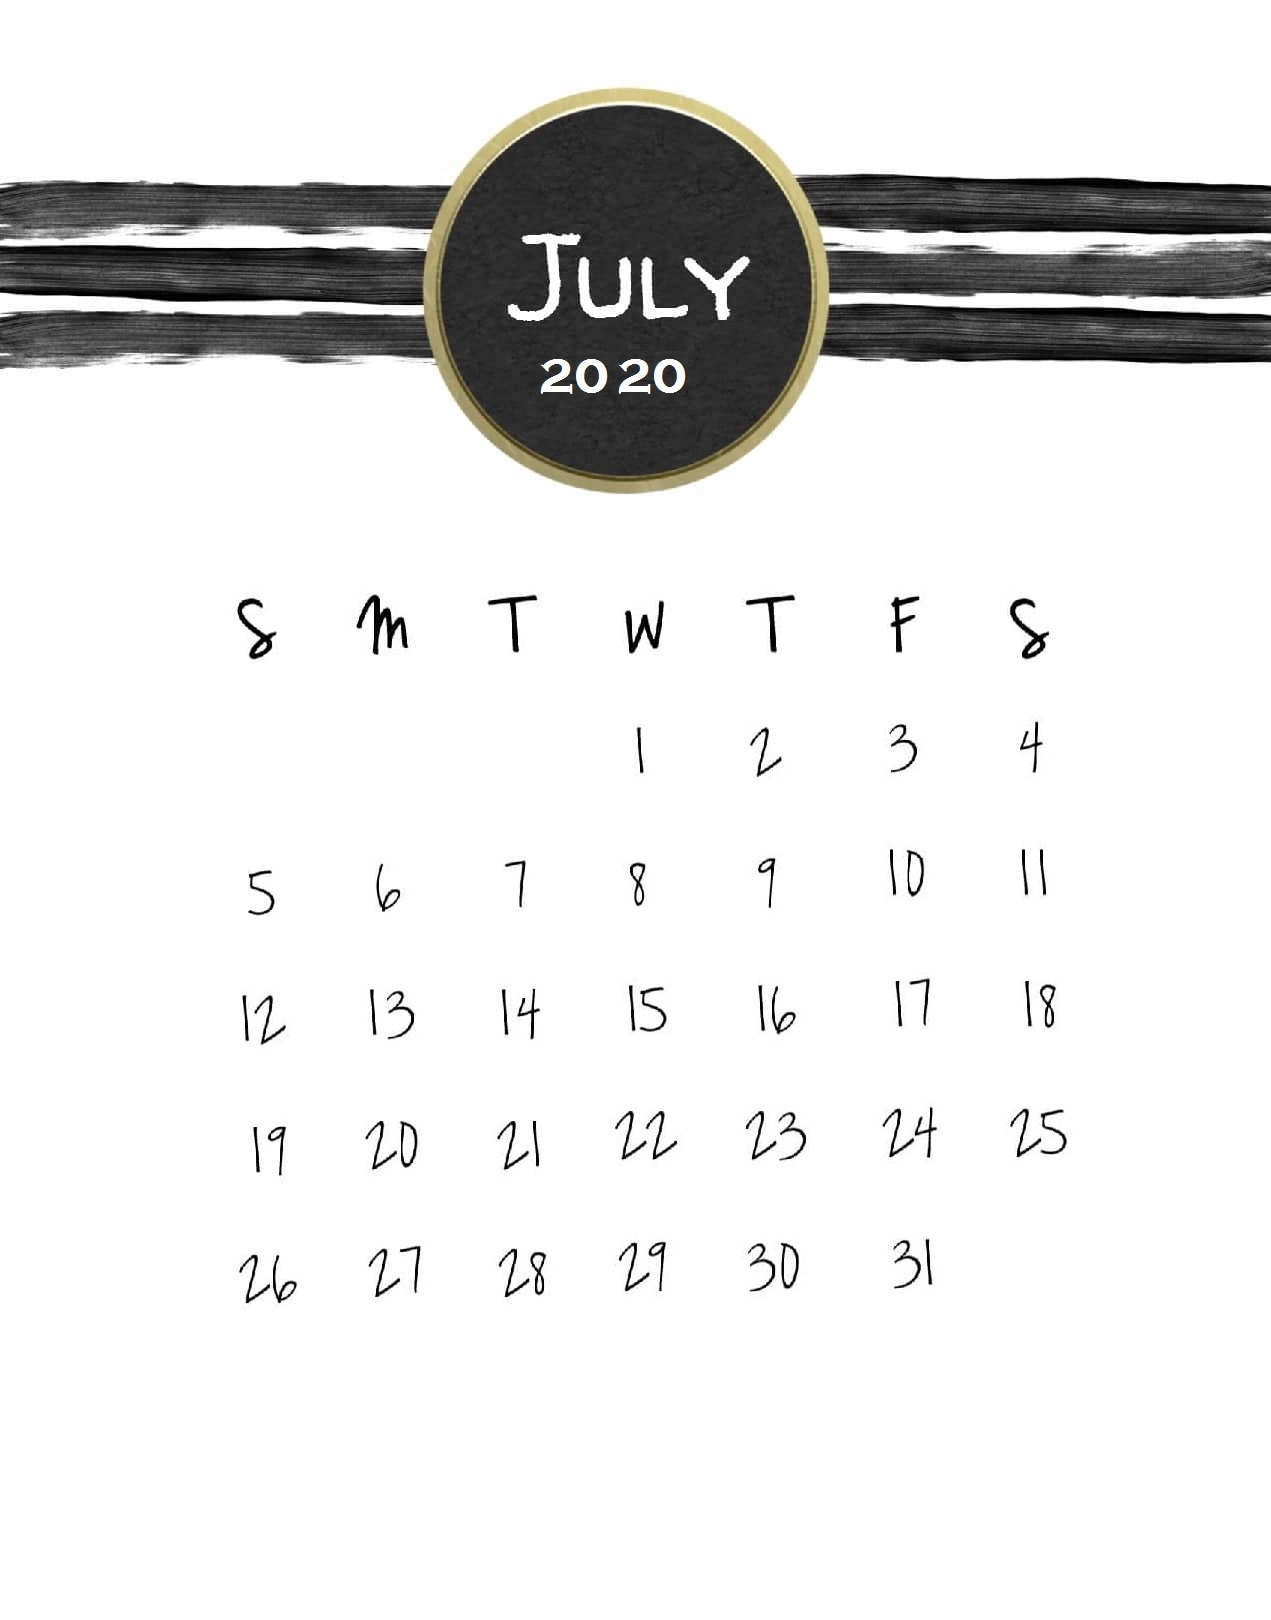 July 2020 Calendar For Wall